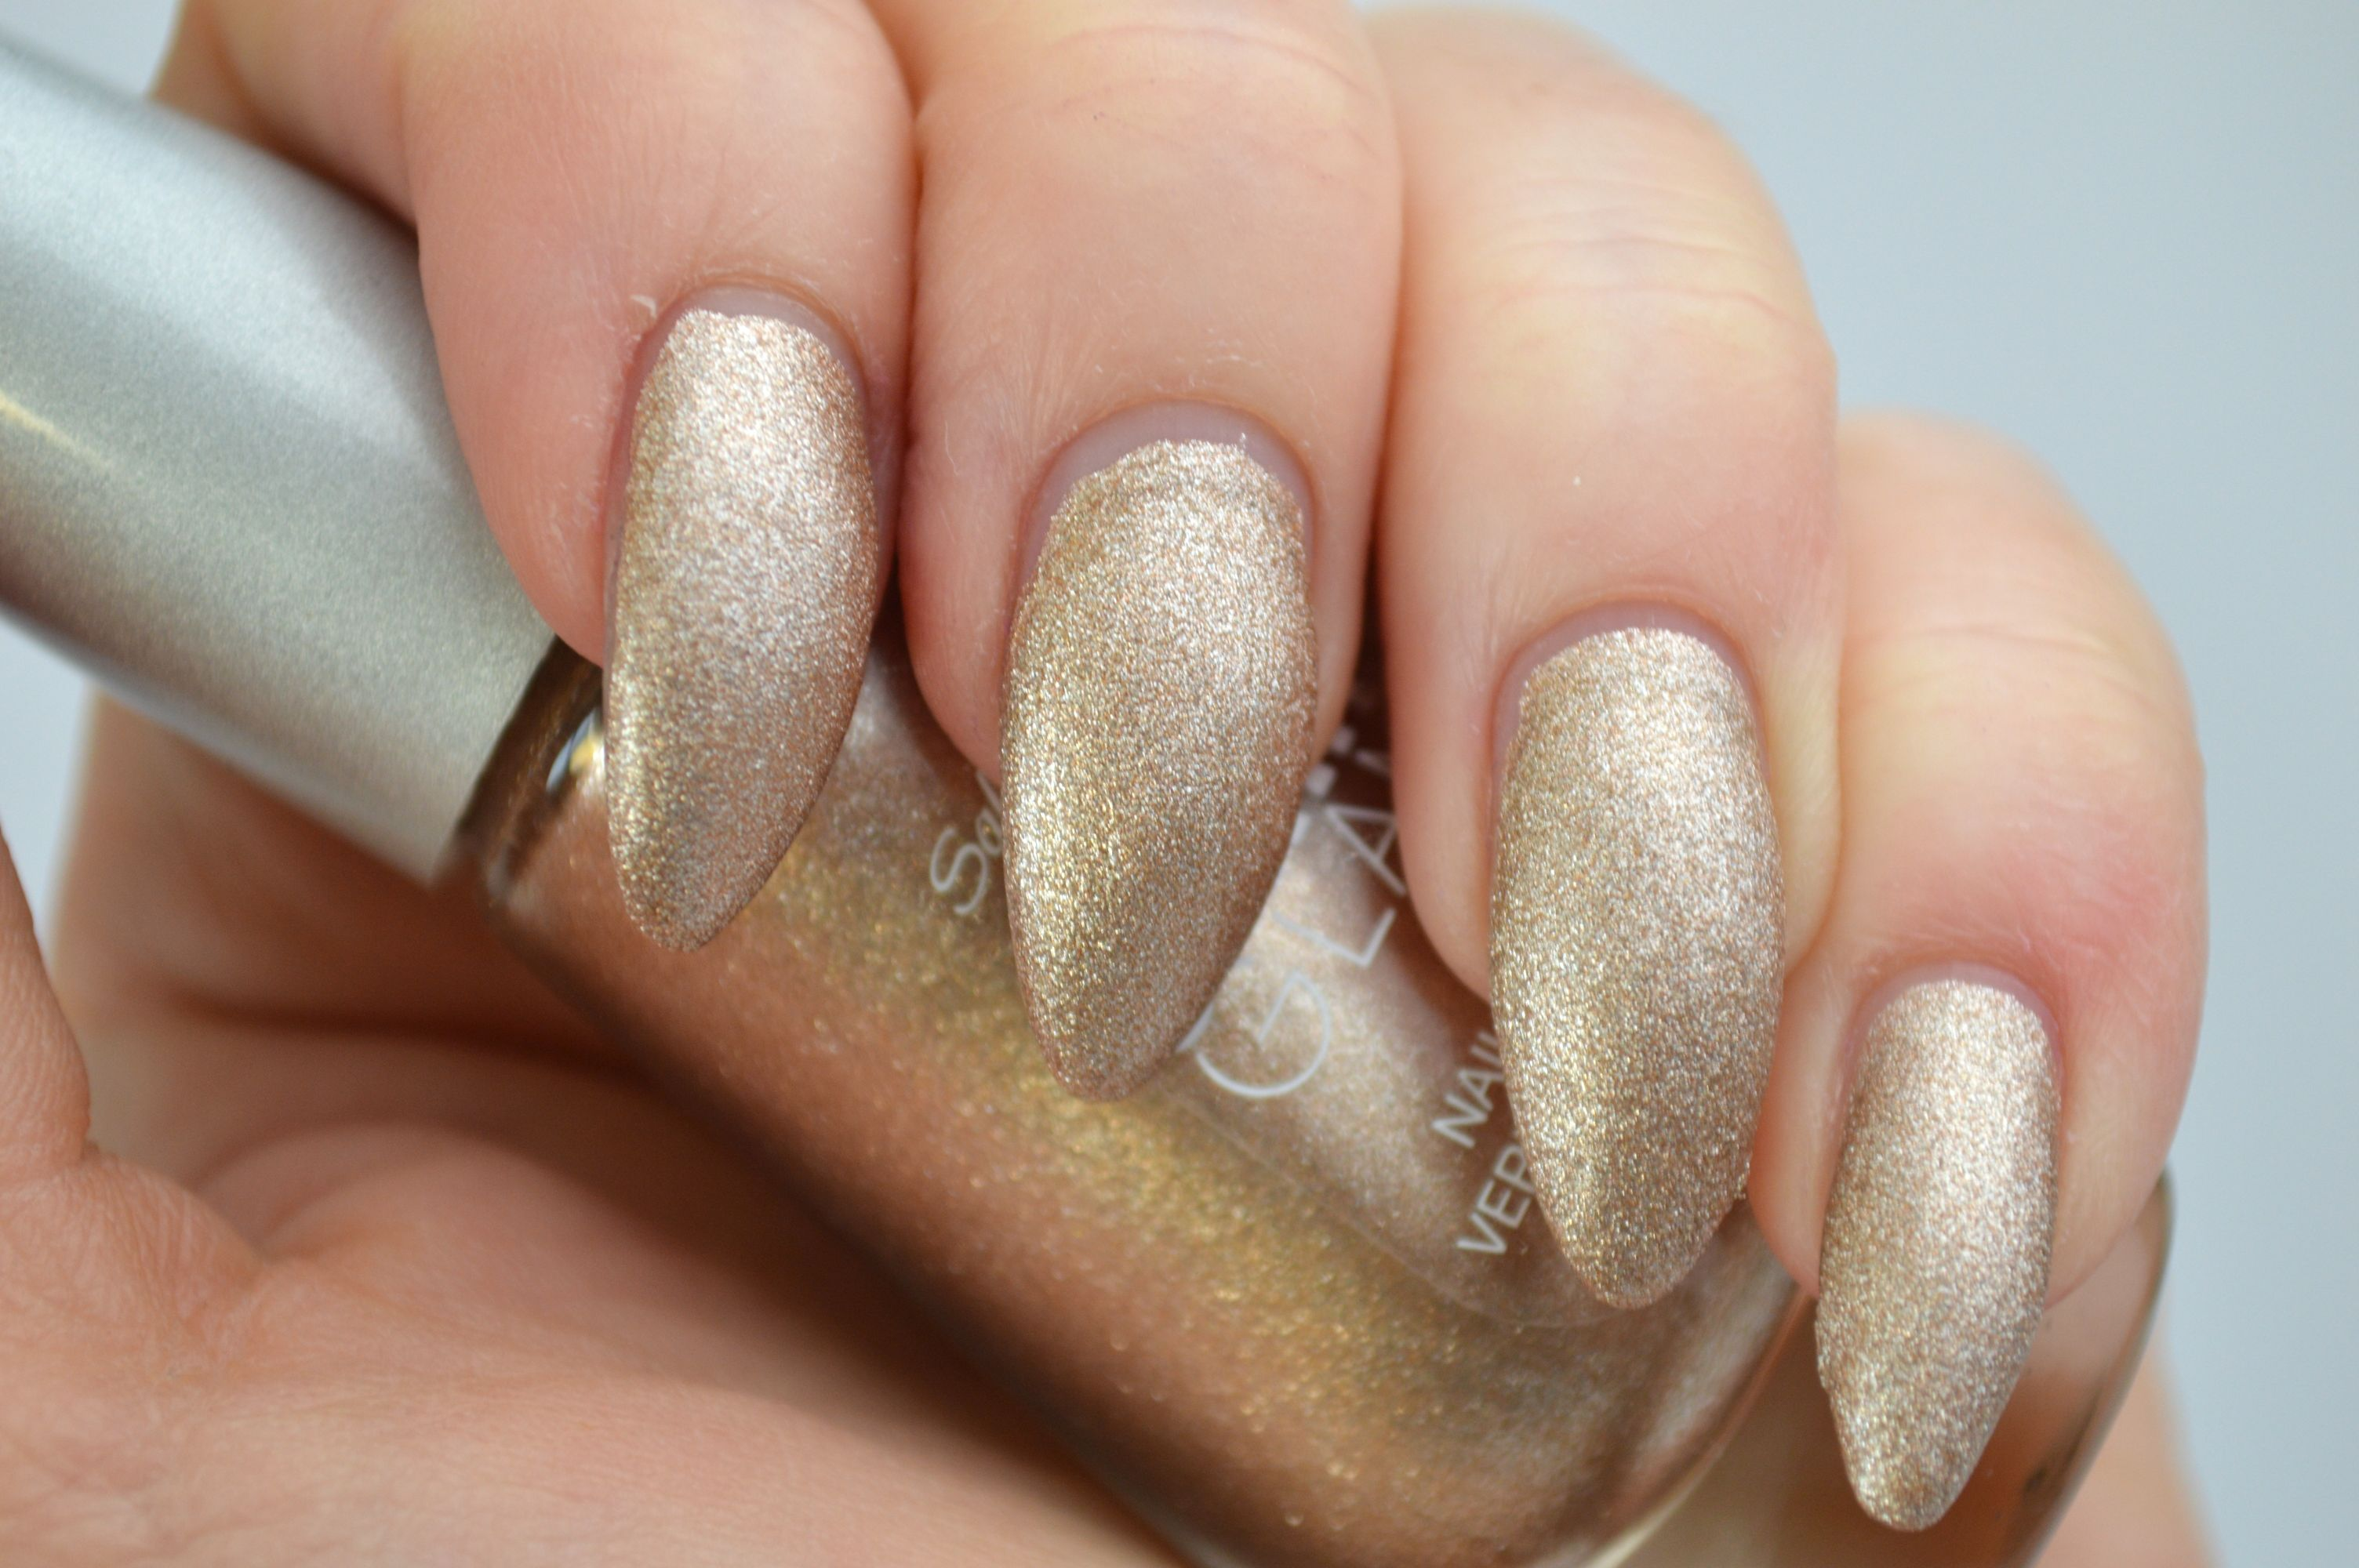 Sally_Hansen_Satin_Glam_Go_Gold_mikalicious